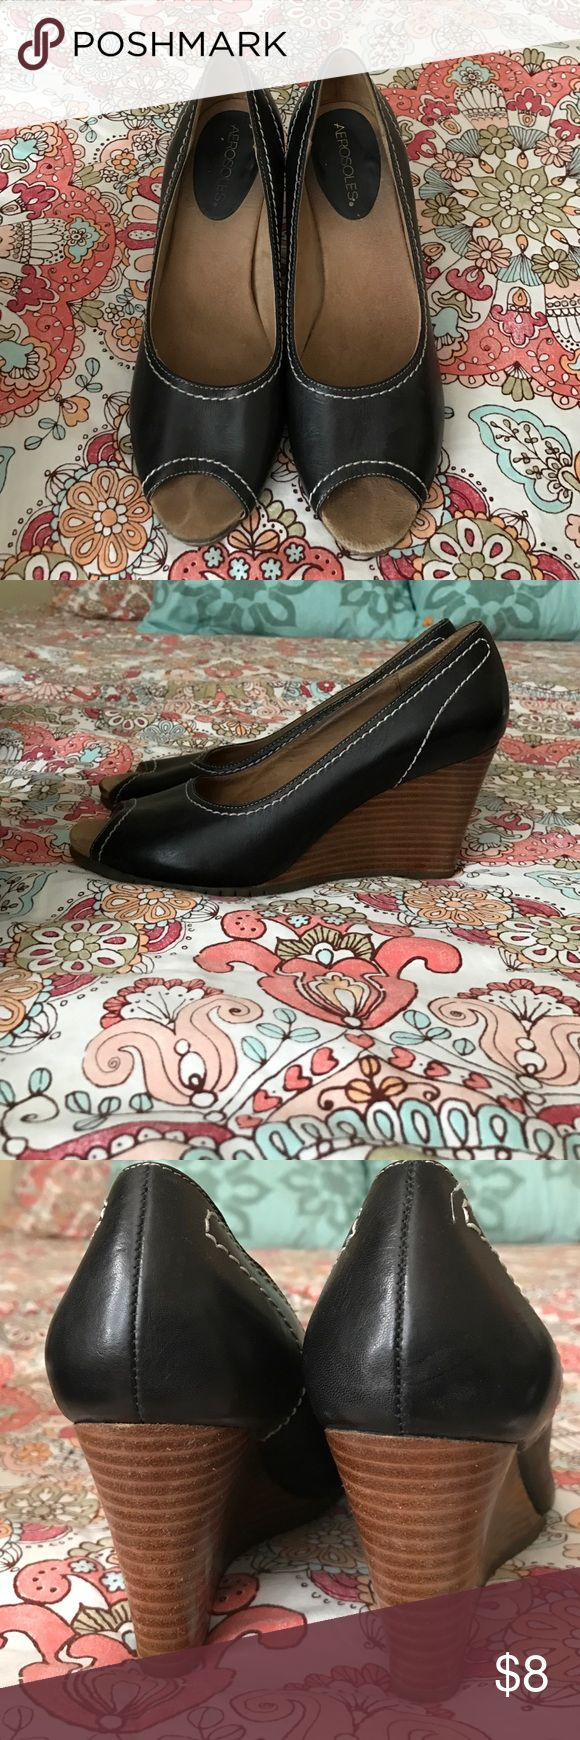 Aerosols peep toe wedges. EUC Aerosoles peep toe wedges. Black. Very comfortable, just need to downsize my closet. AEROSOLES Shoes Wedges